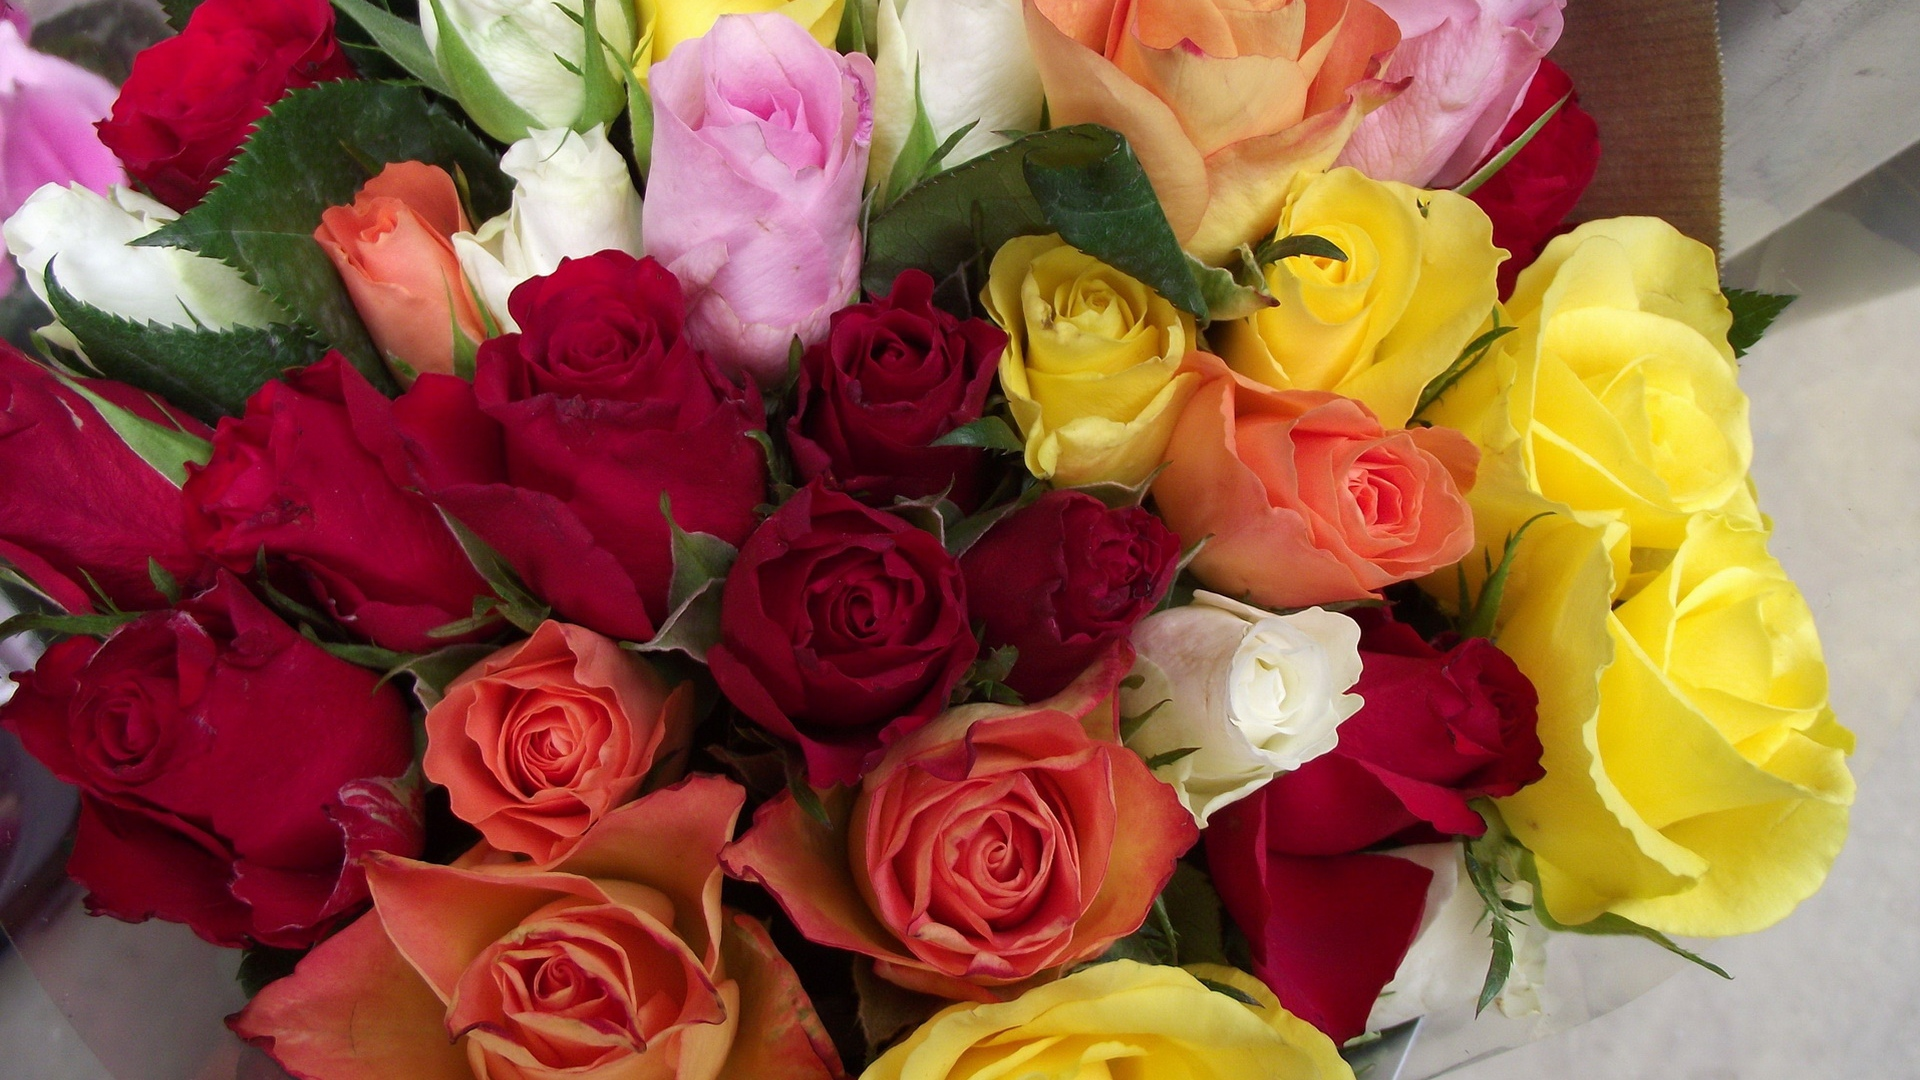 Download wallpaper 1920x1080 roses bouquet different for Different color roses bouquet